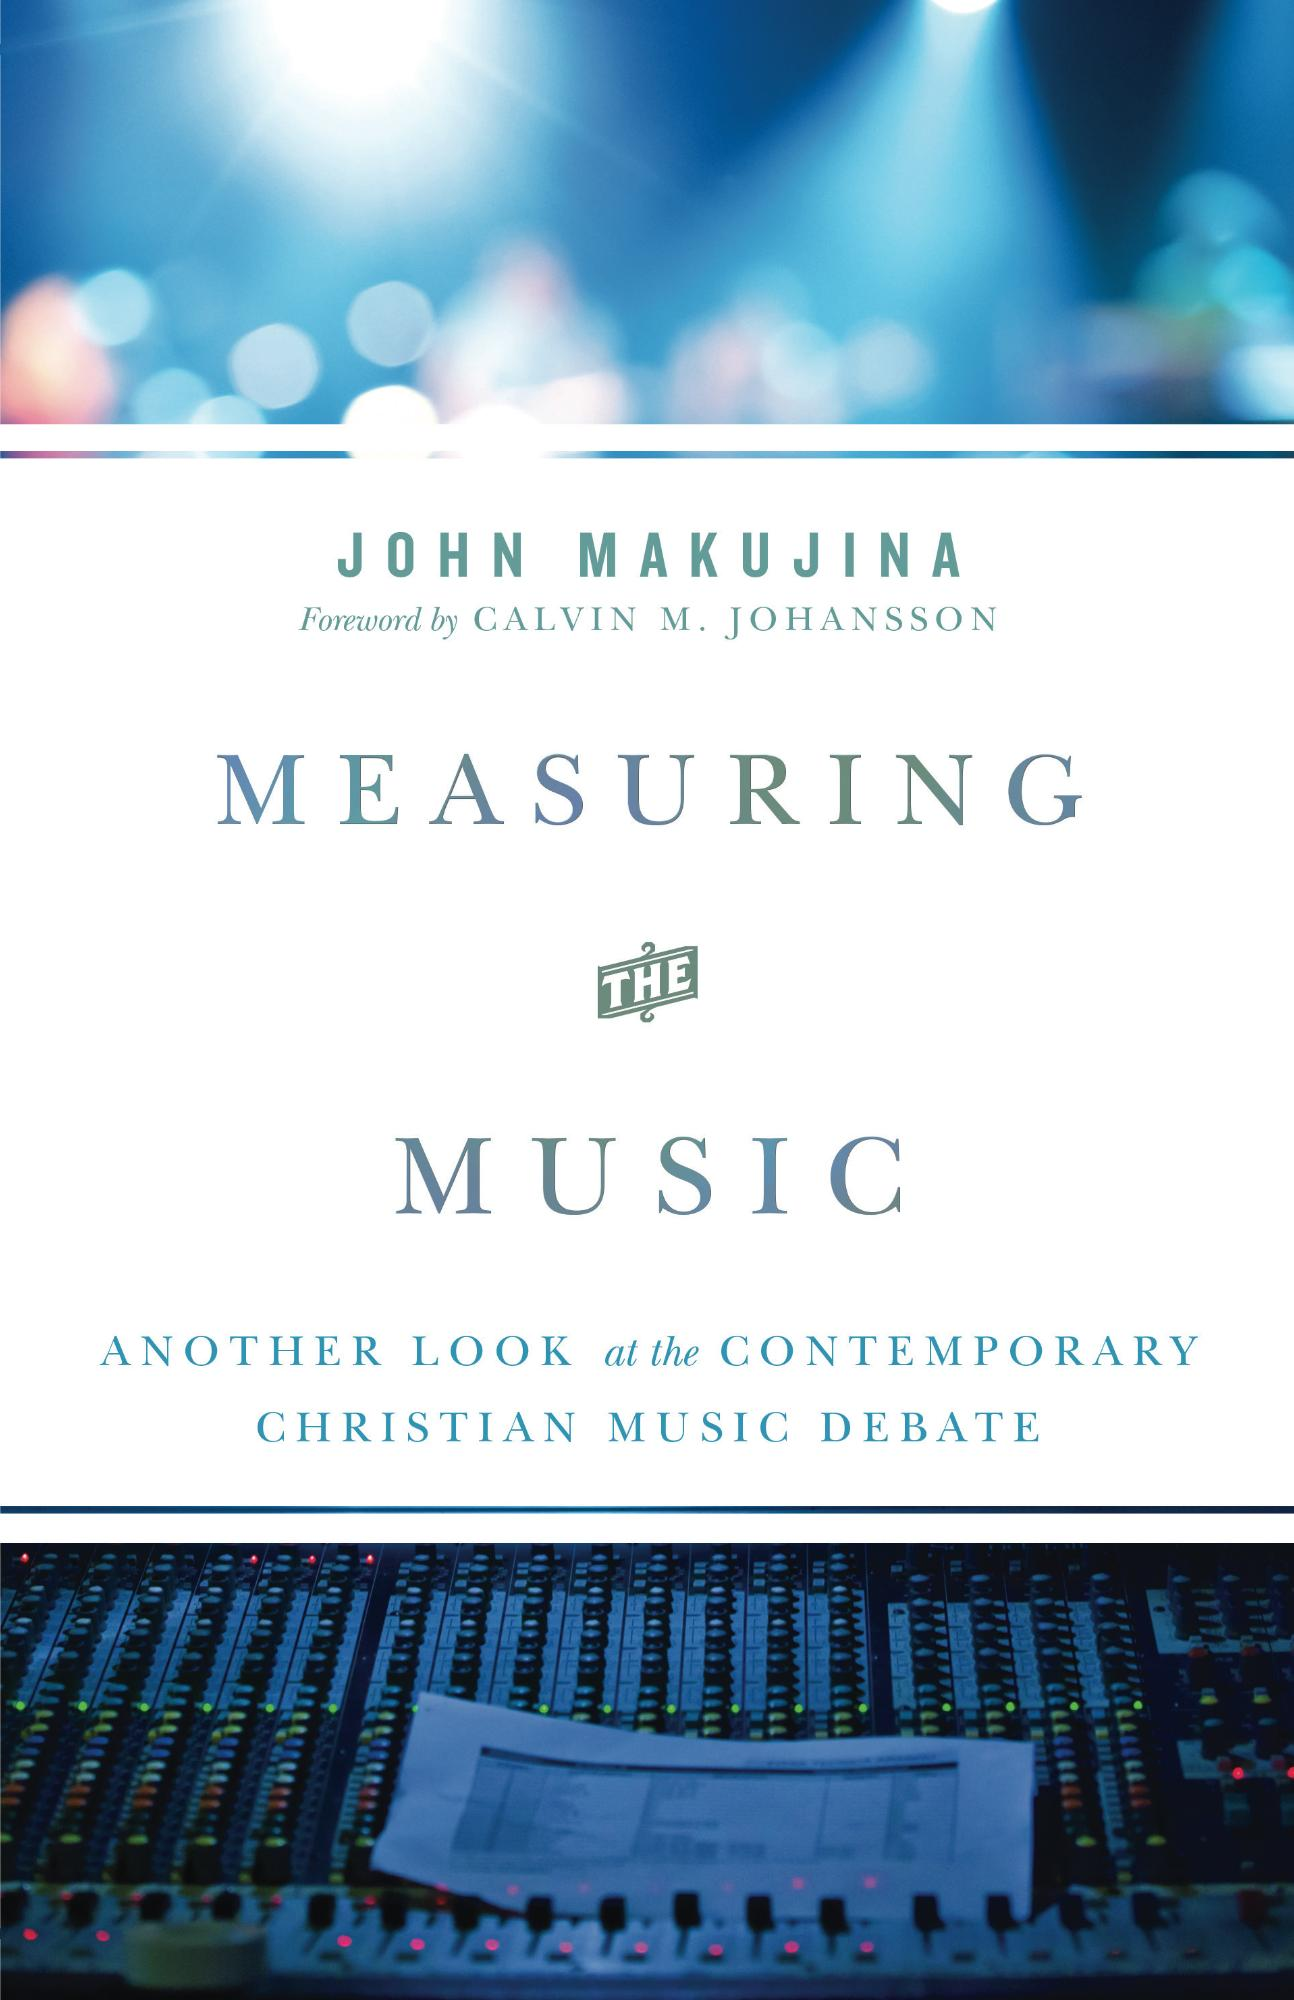 John Makujina's Preface to the Third Edition of Measuring the Music